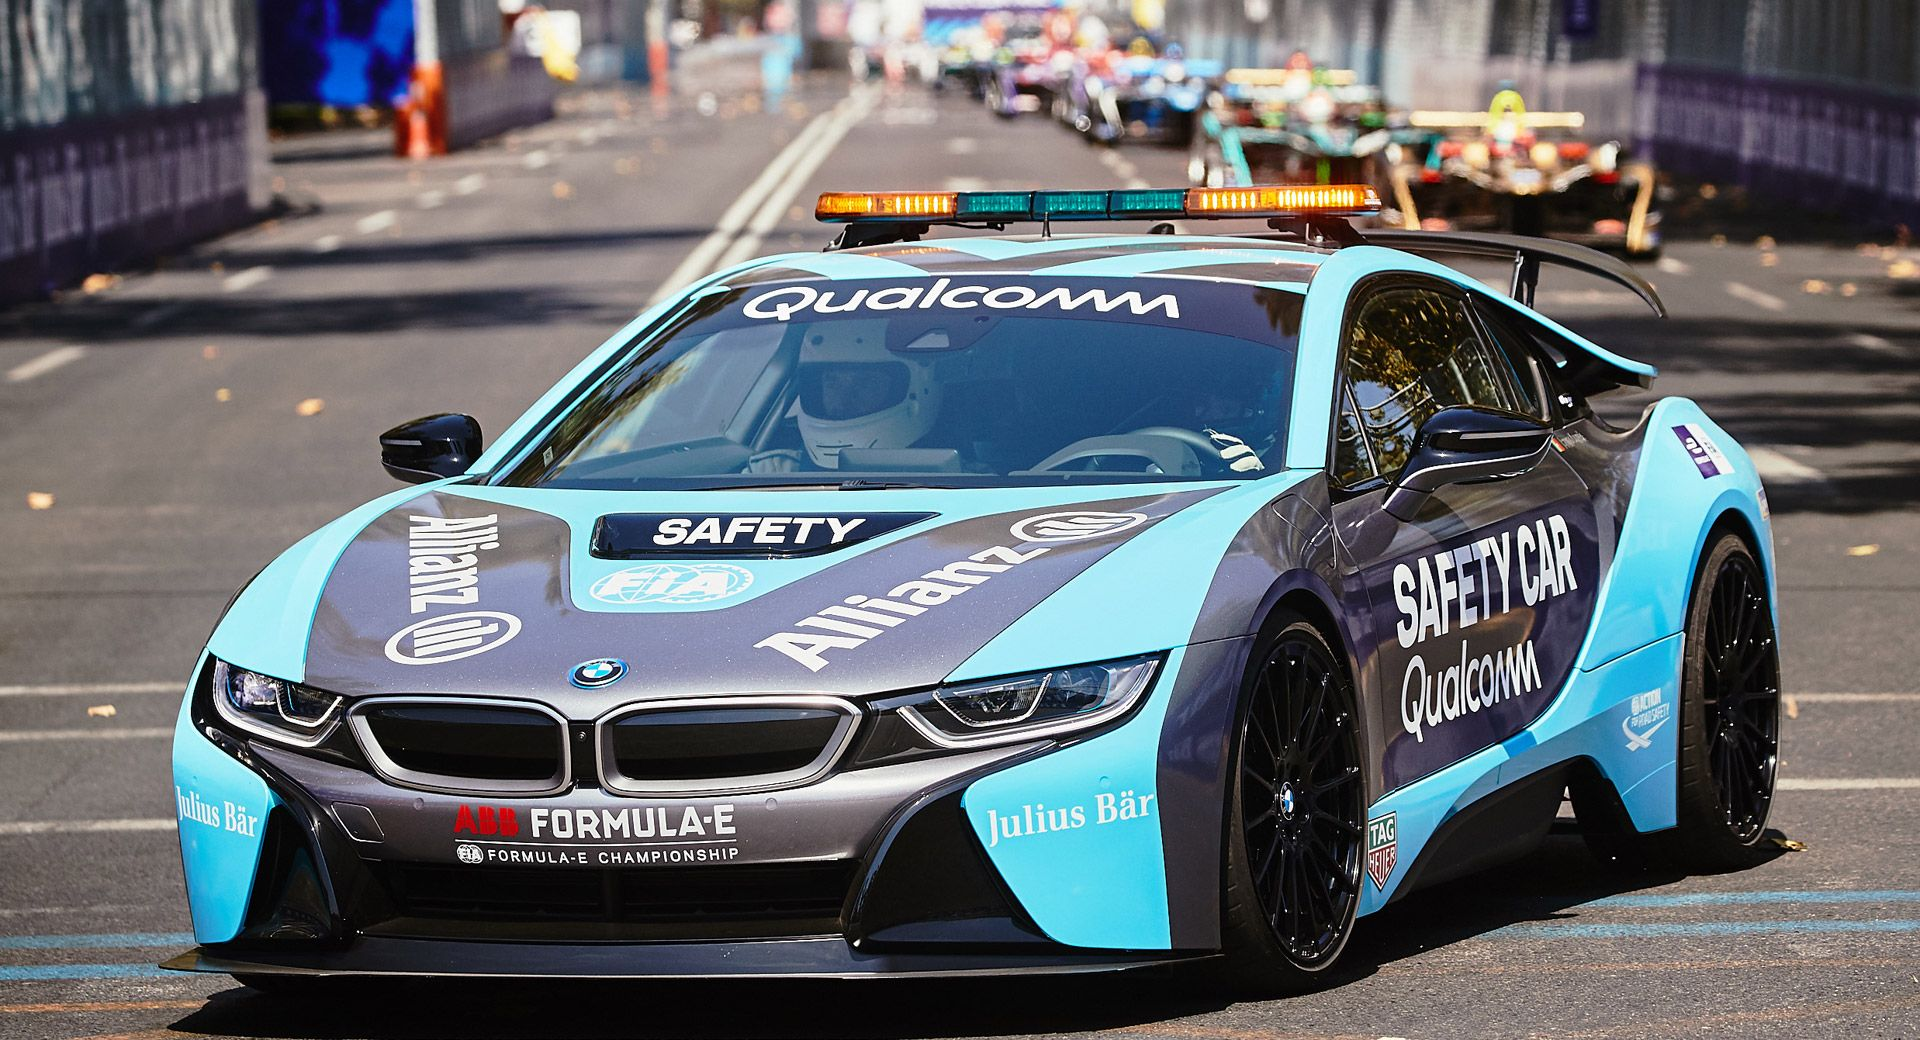 Bmw I8 Hits The Track With Inductive Charging As Formula E Safety Car Carscoops Bmw Car Safety Bmw I8